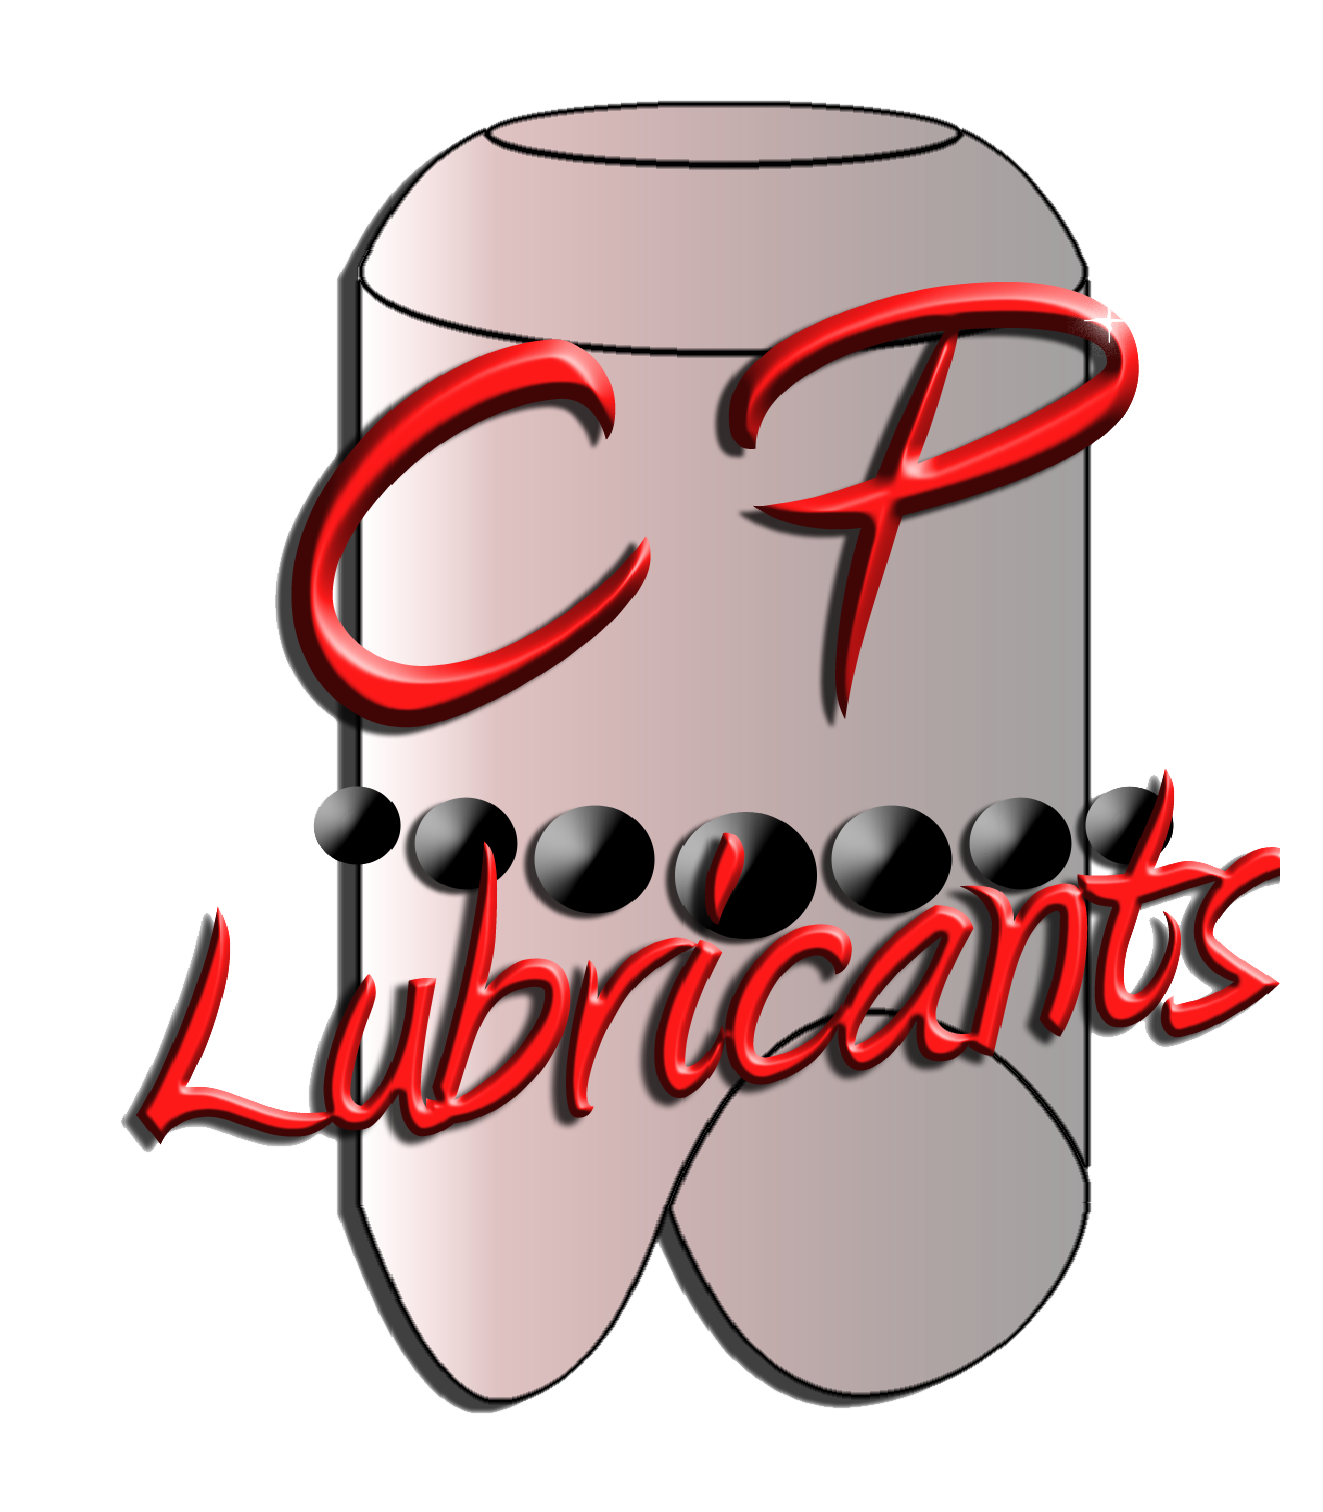 Cp Lubricants